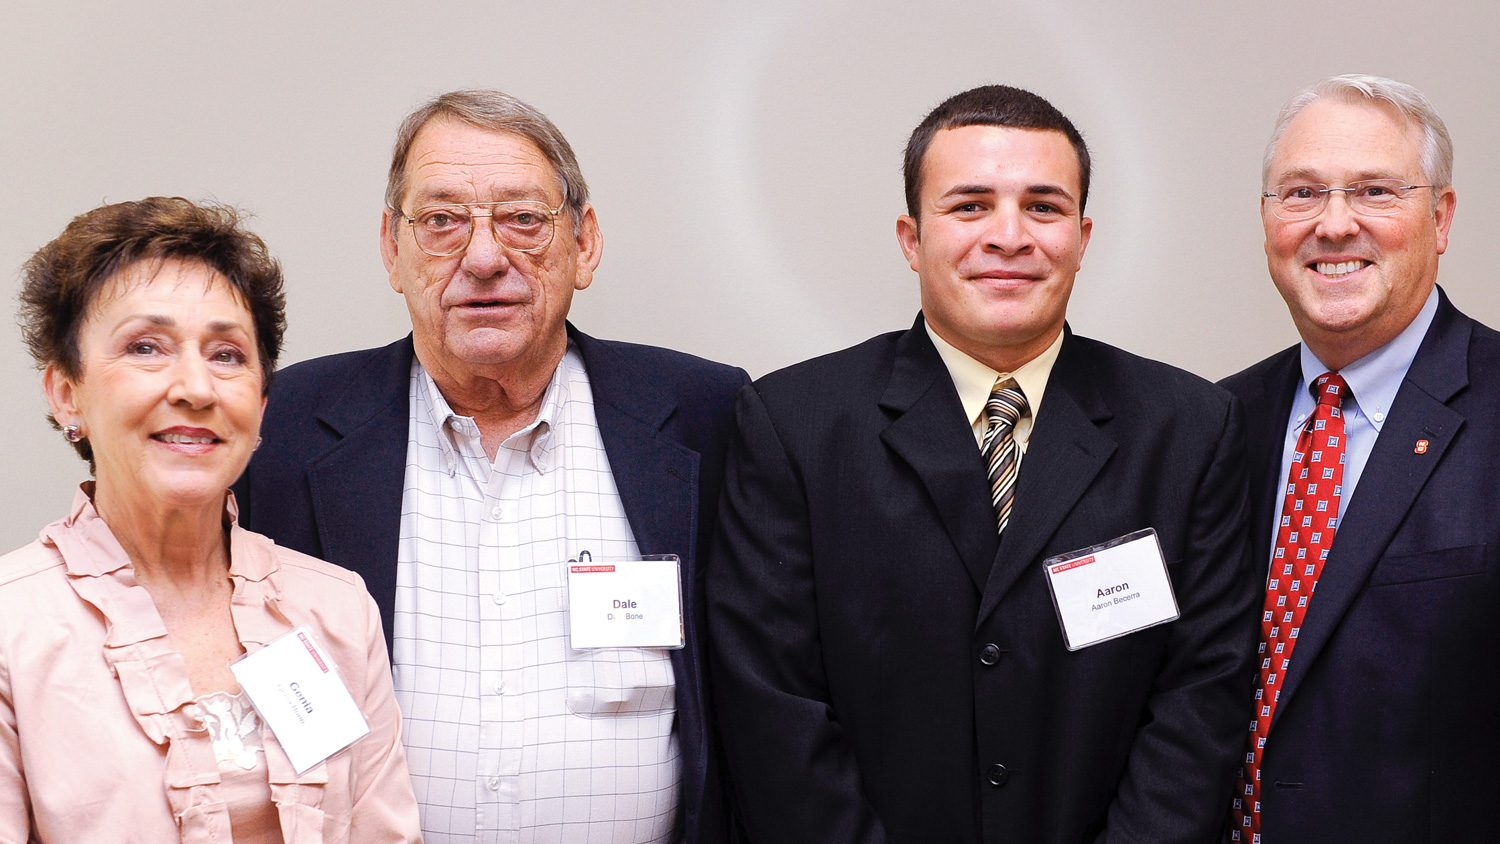 Genia and Dale Bone (left) with Bone Scholar Aaron Becerra and NC State Chancellor Randy Woodson (far right).